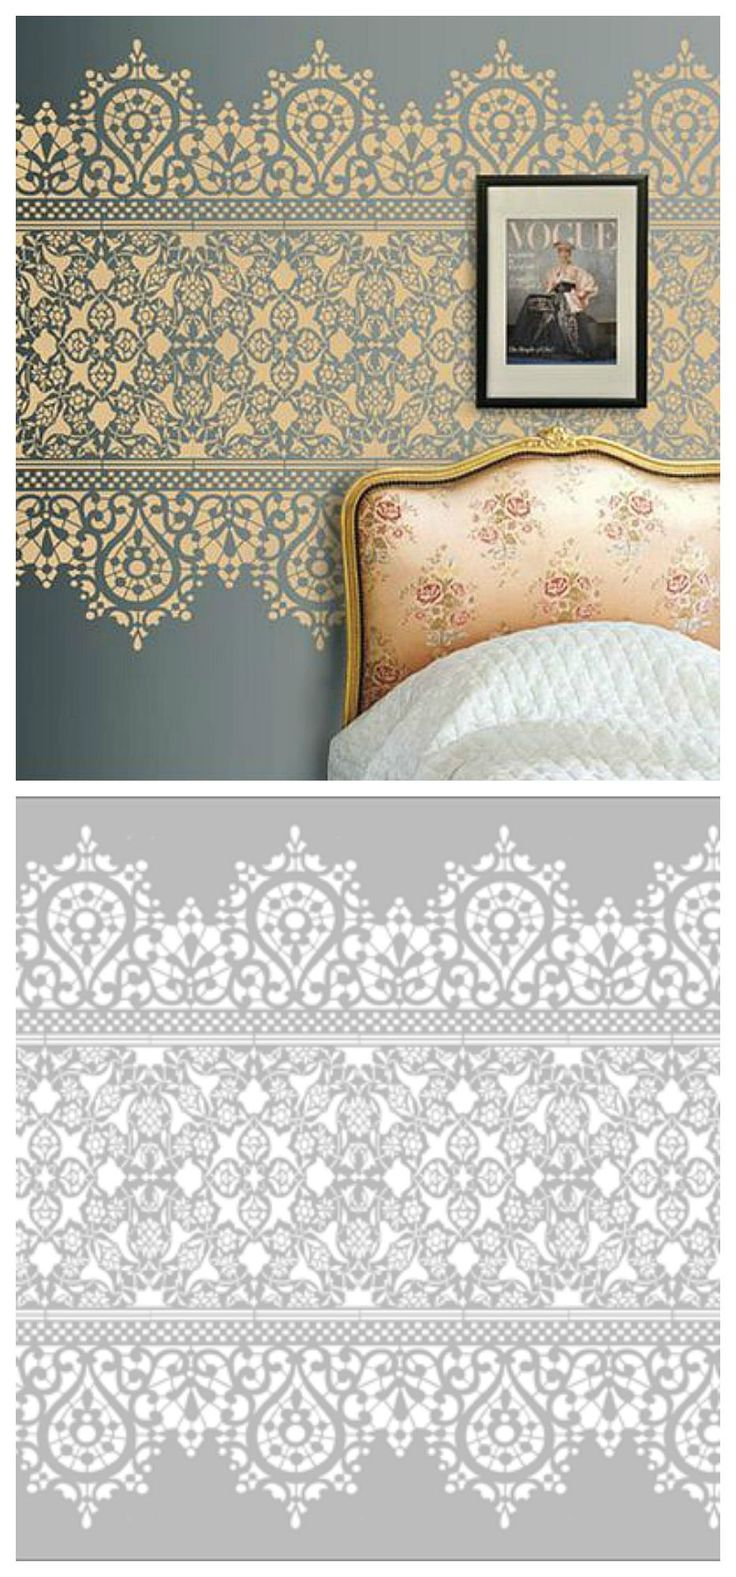 Wall stencil, lace wall stencil                                                                                                                                                                                 More